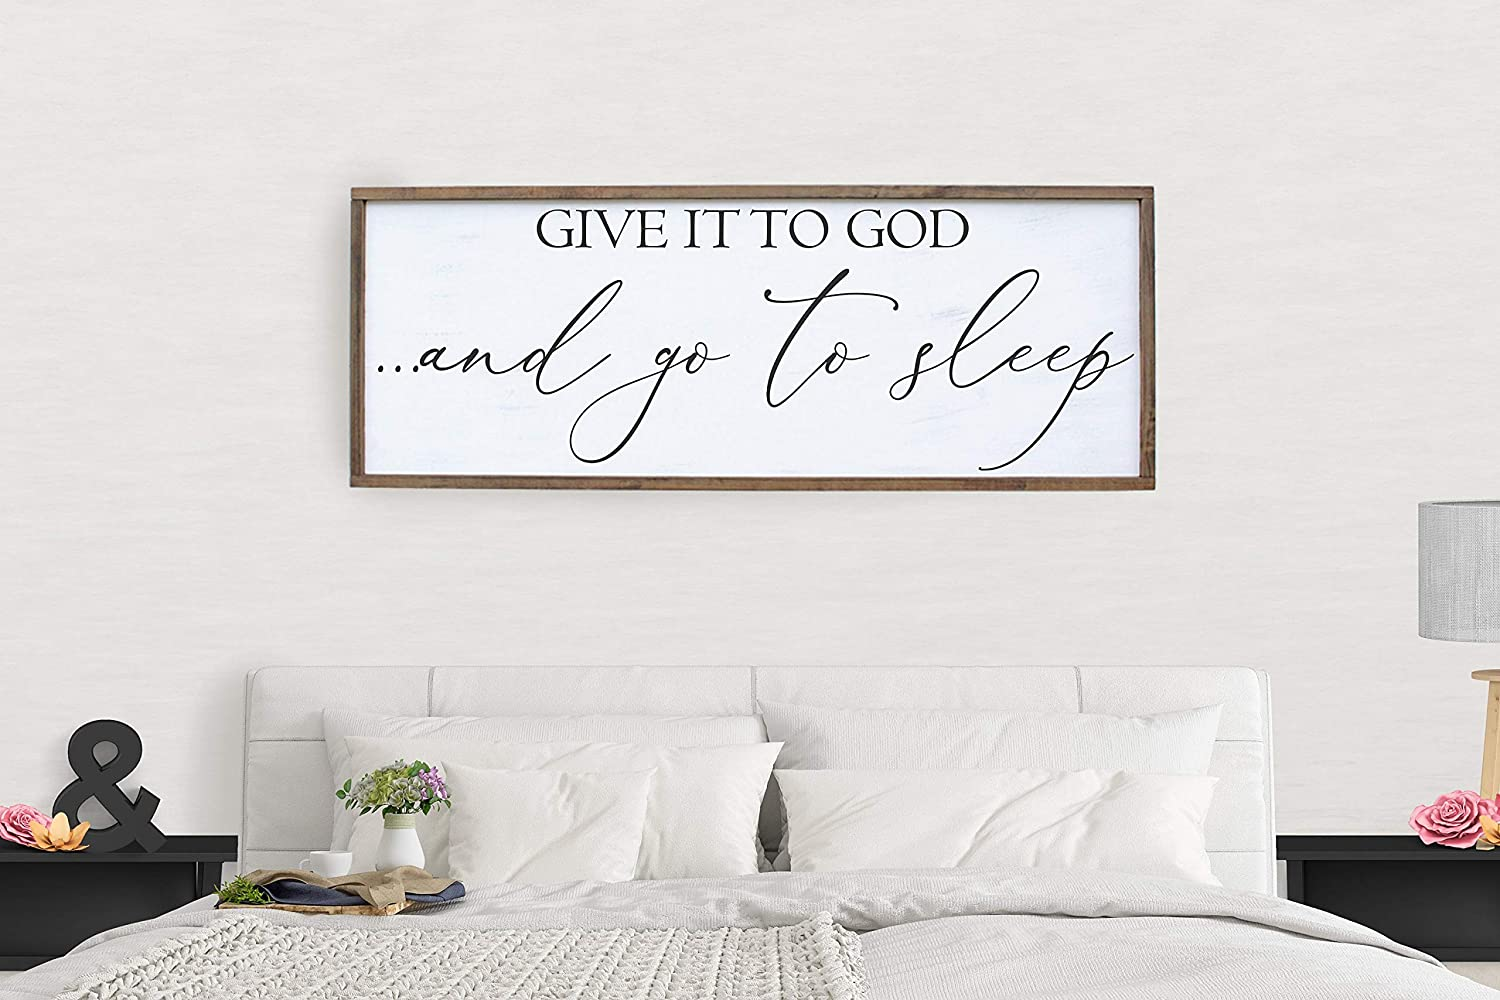 Wood Framed Sign 12x22'' Bible Verse Printable Wooden Prints Give It To God And Go To Sleep Sign Over The Bed Wall Art Farmhouse Decor Sign Bedroom Decor Above The Bed Wood Saying Large Framed